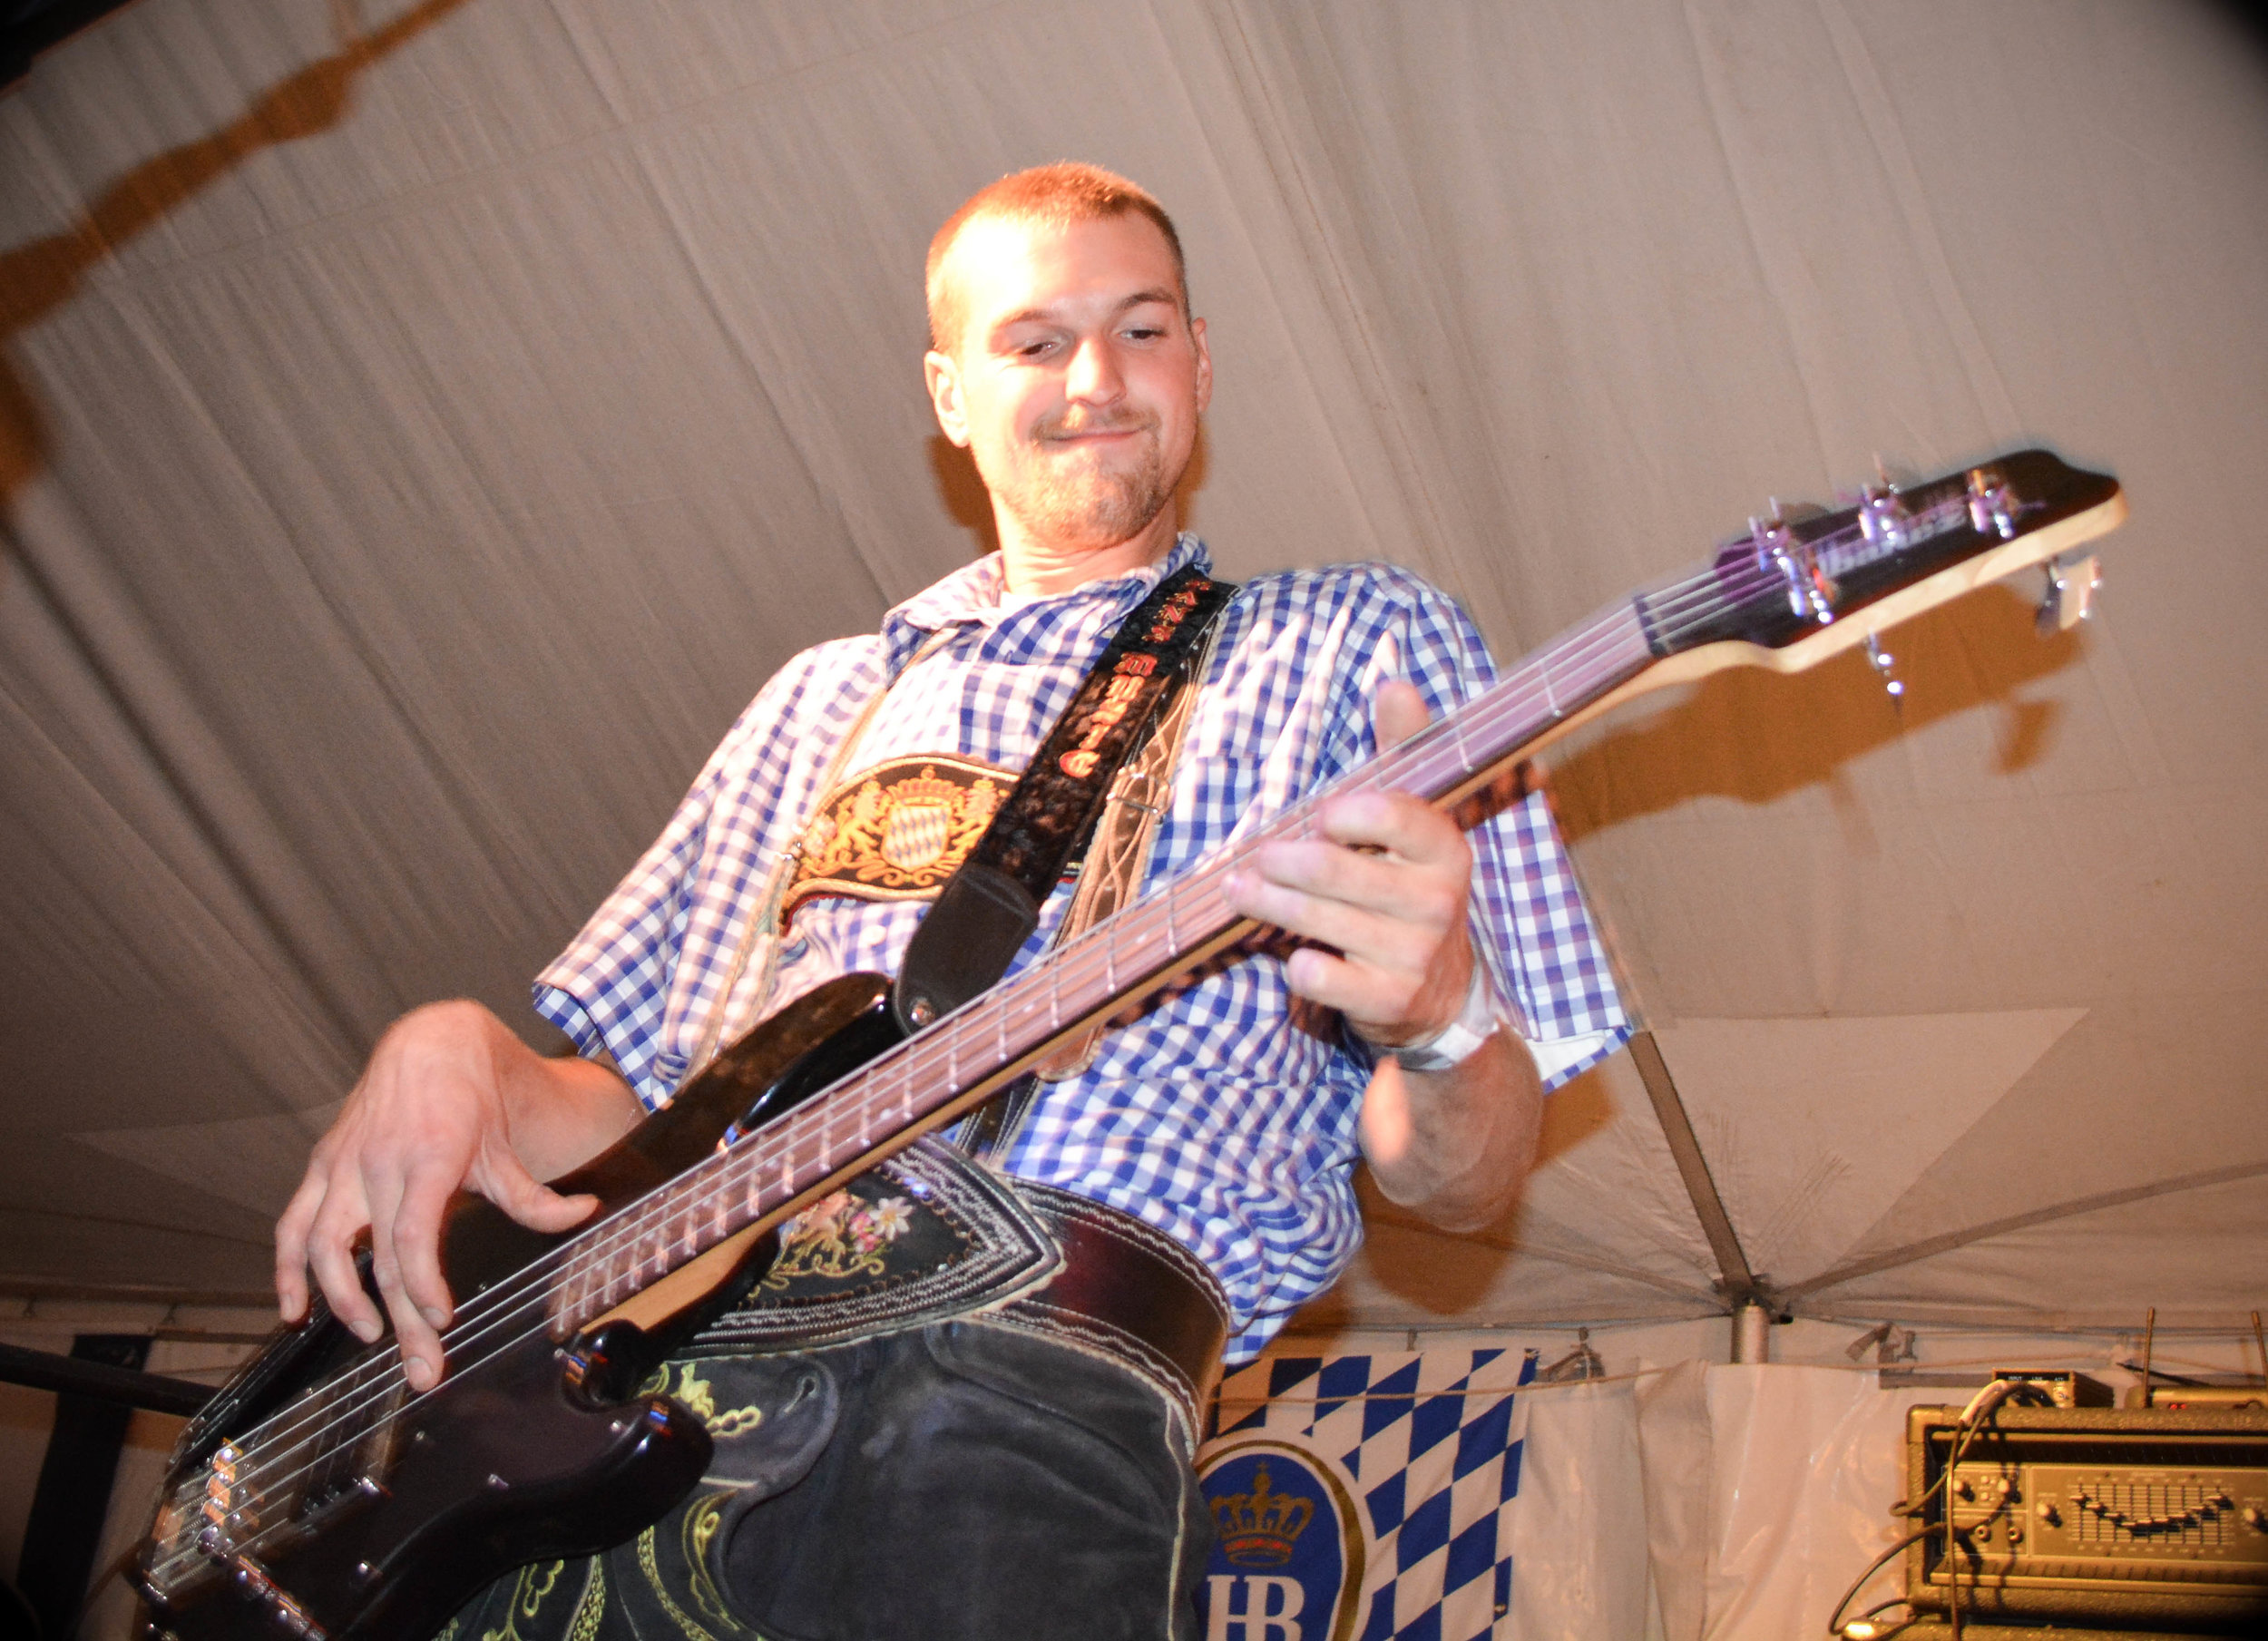 Erik Rainer, Leavenworth Oktoberfest 2014